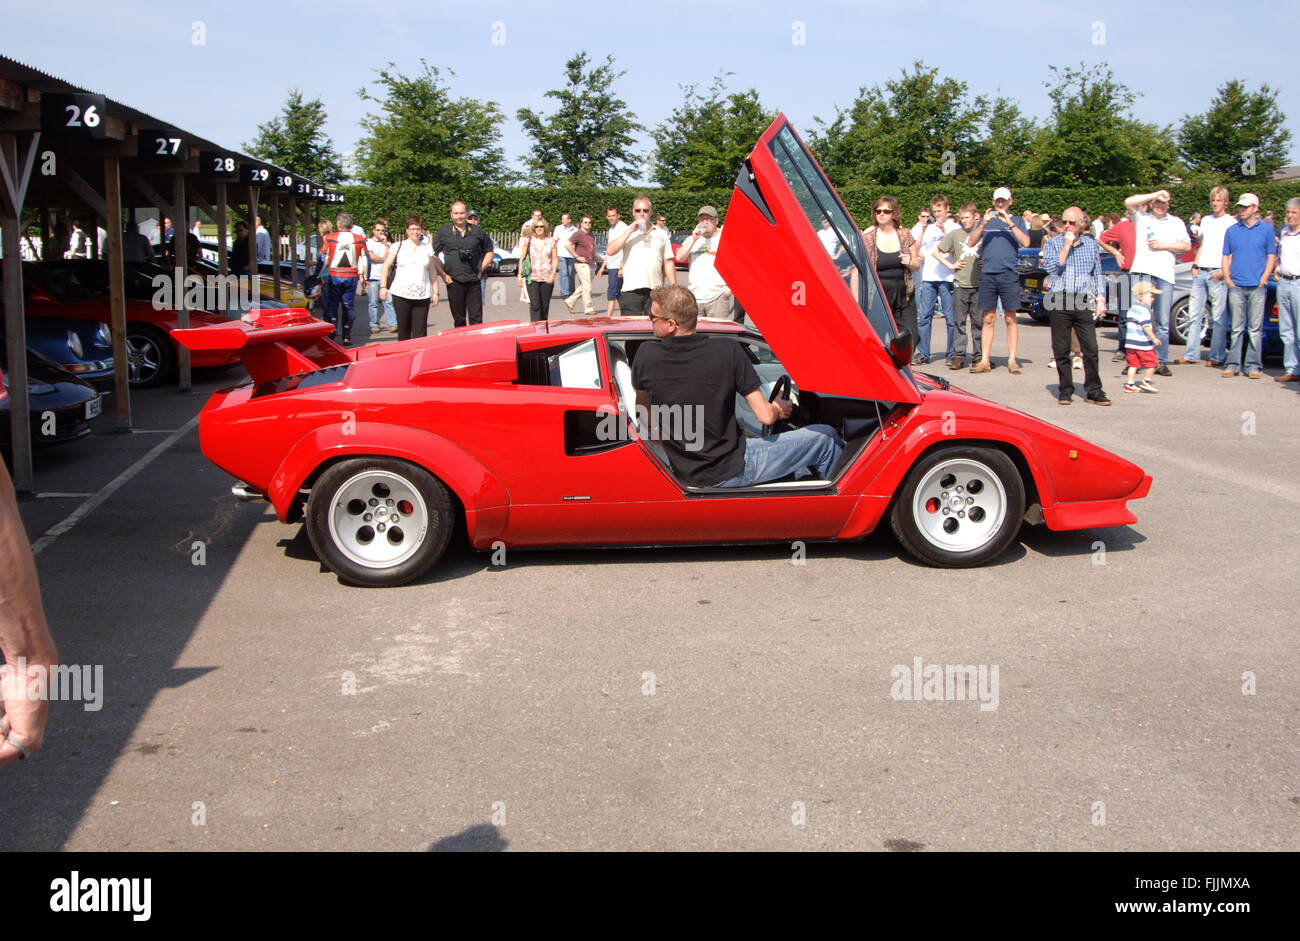 Lamborghini Countach Reverse Parking With The Door Open So The Driver Stock Photo 97527202 Alamy